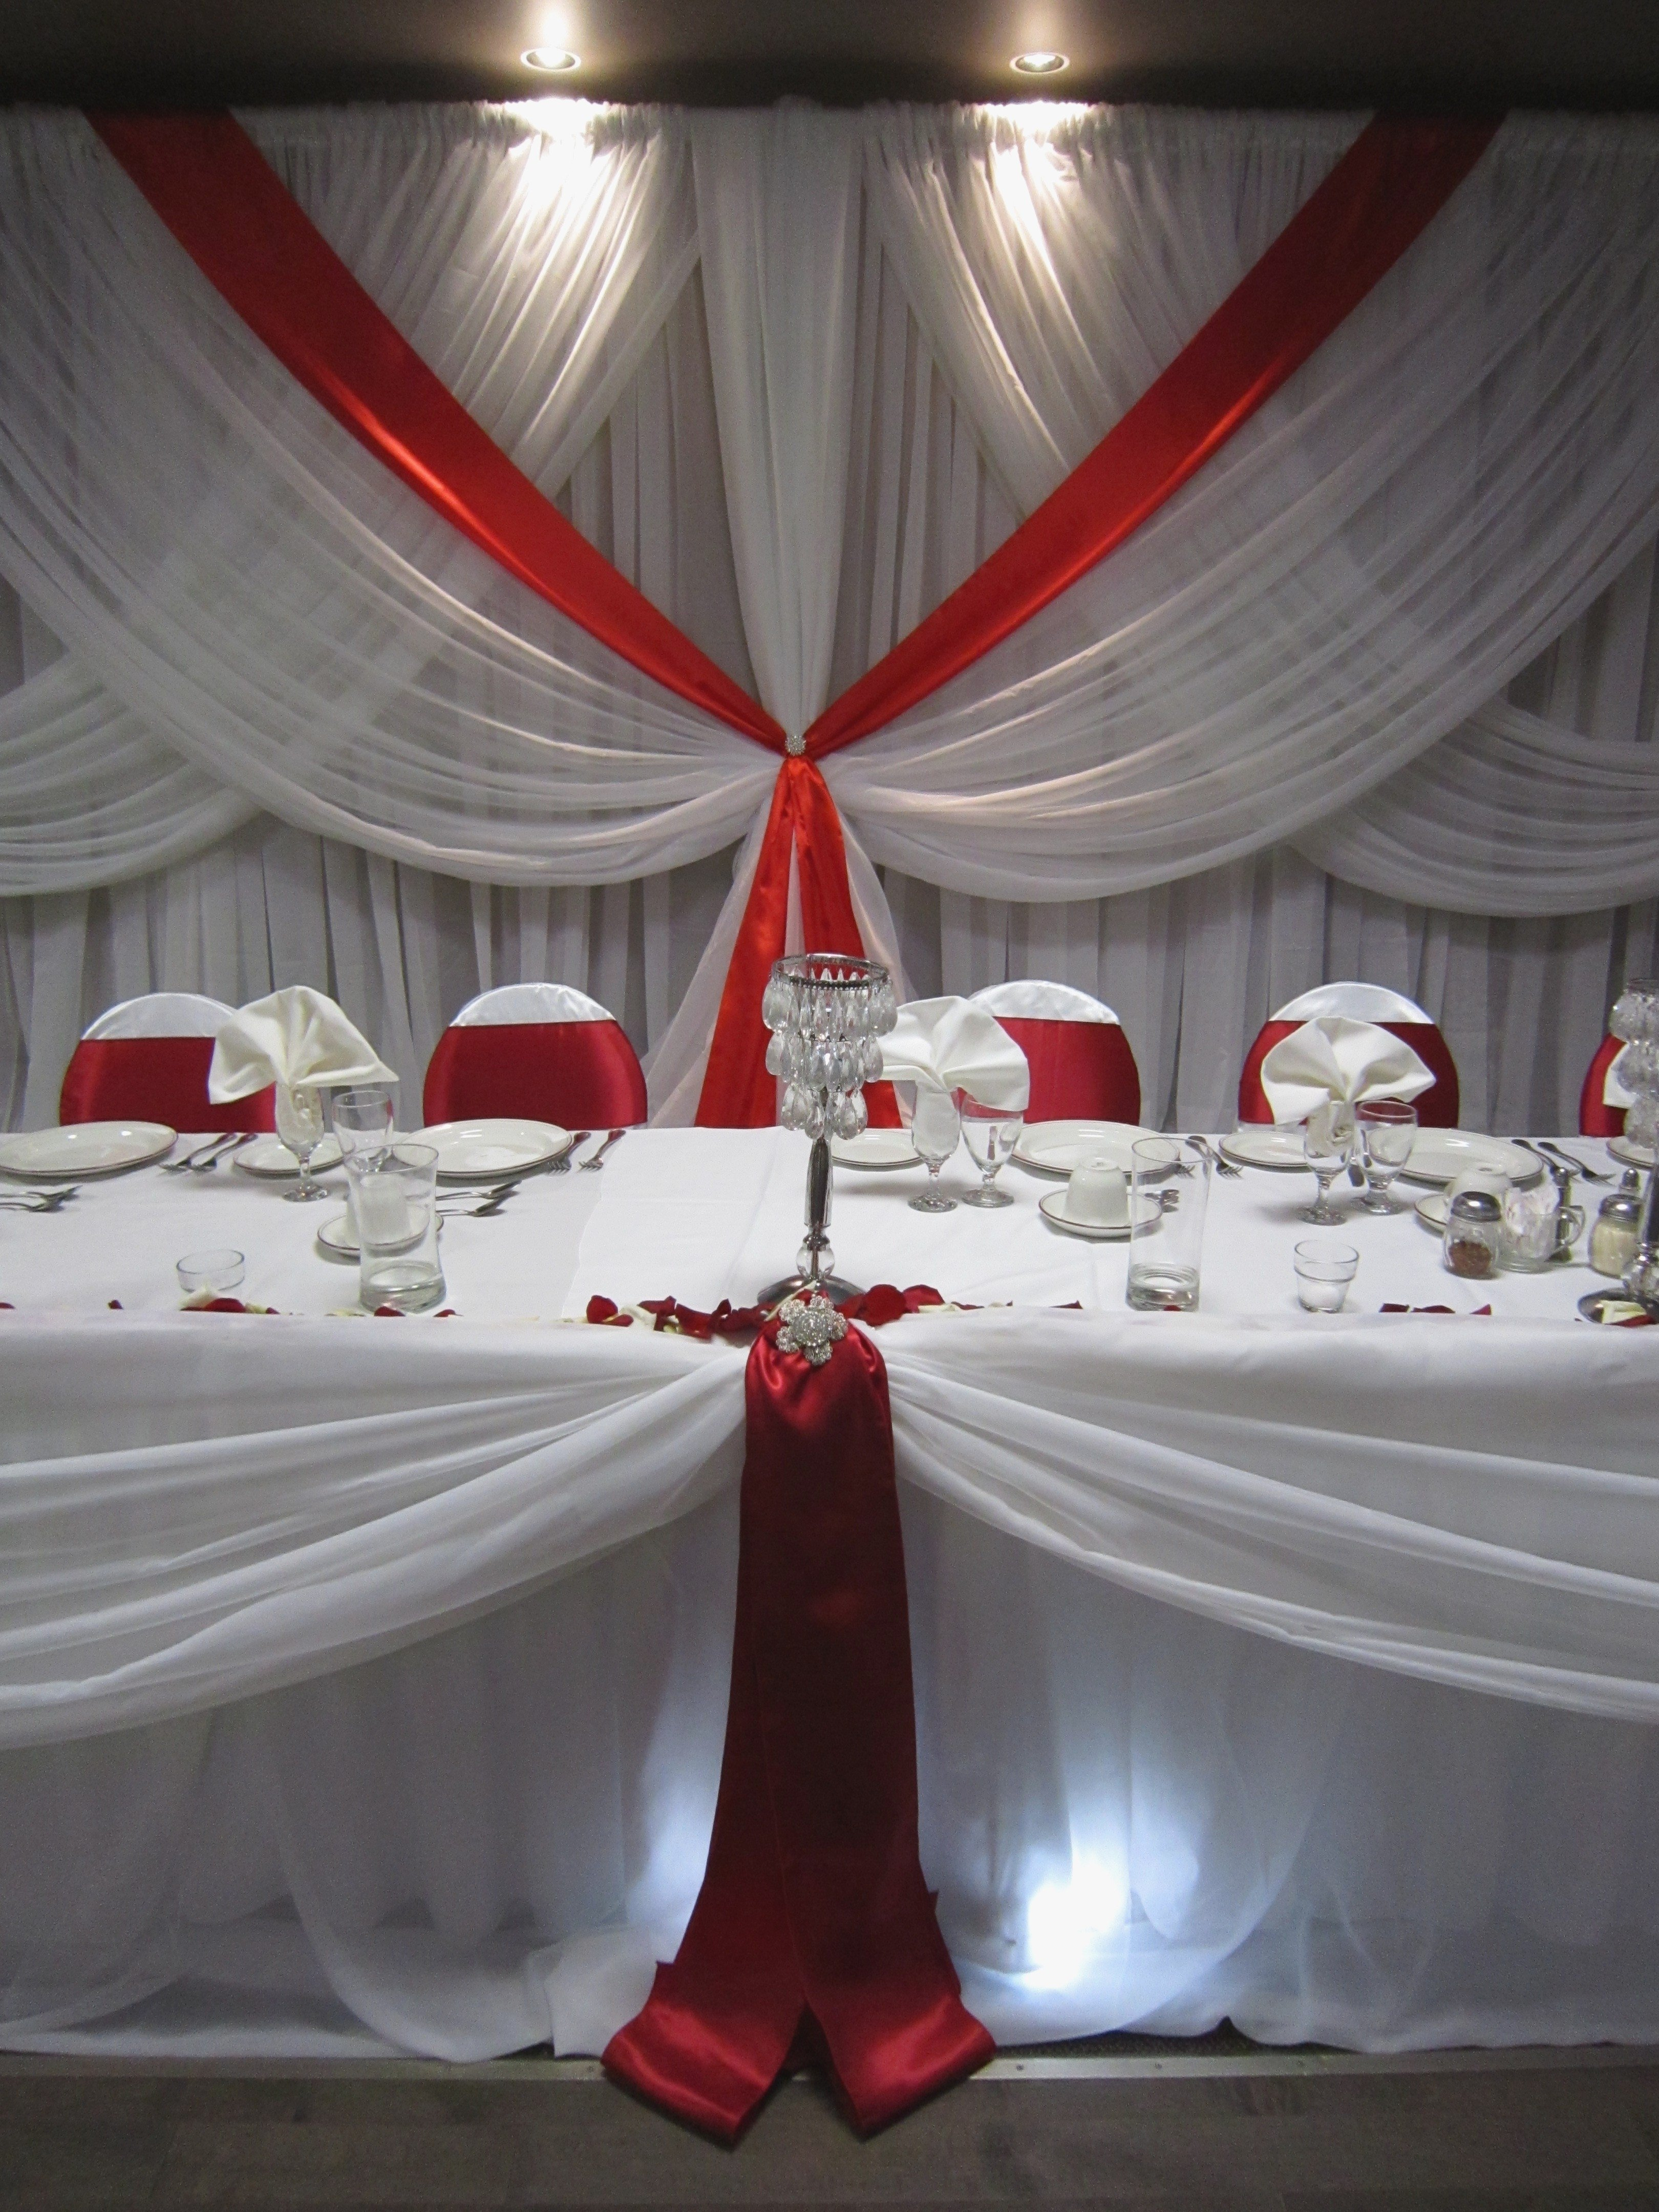 10 Spectacular Red And White Wedding Ideas red wedding decorations best of red and white wedding supplies red 2020